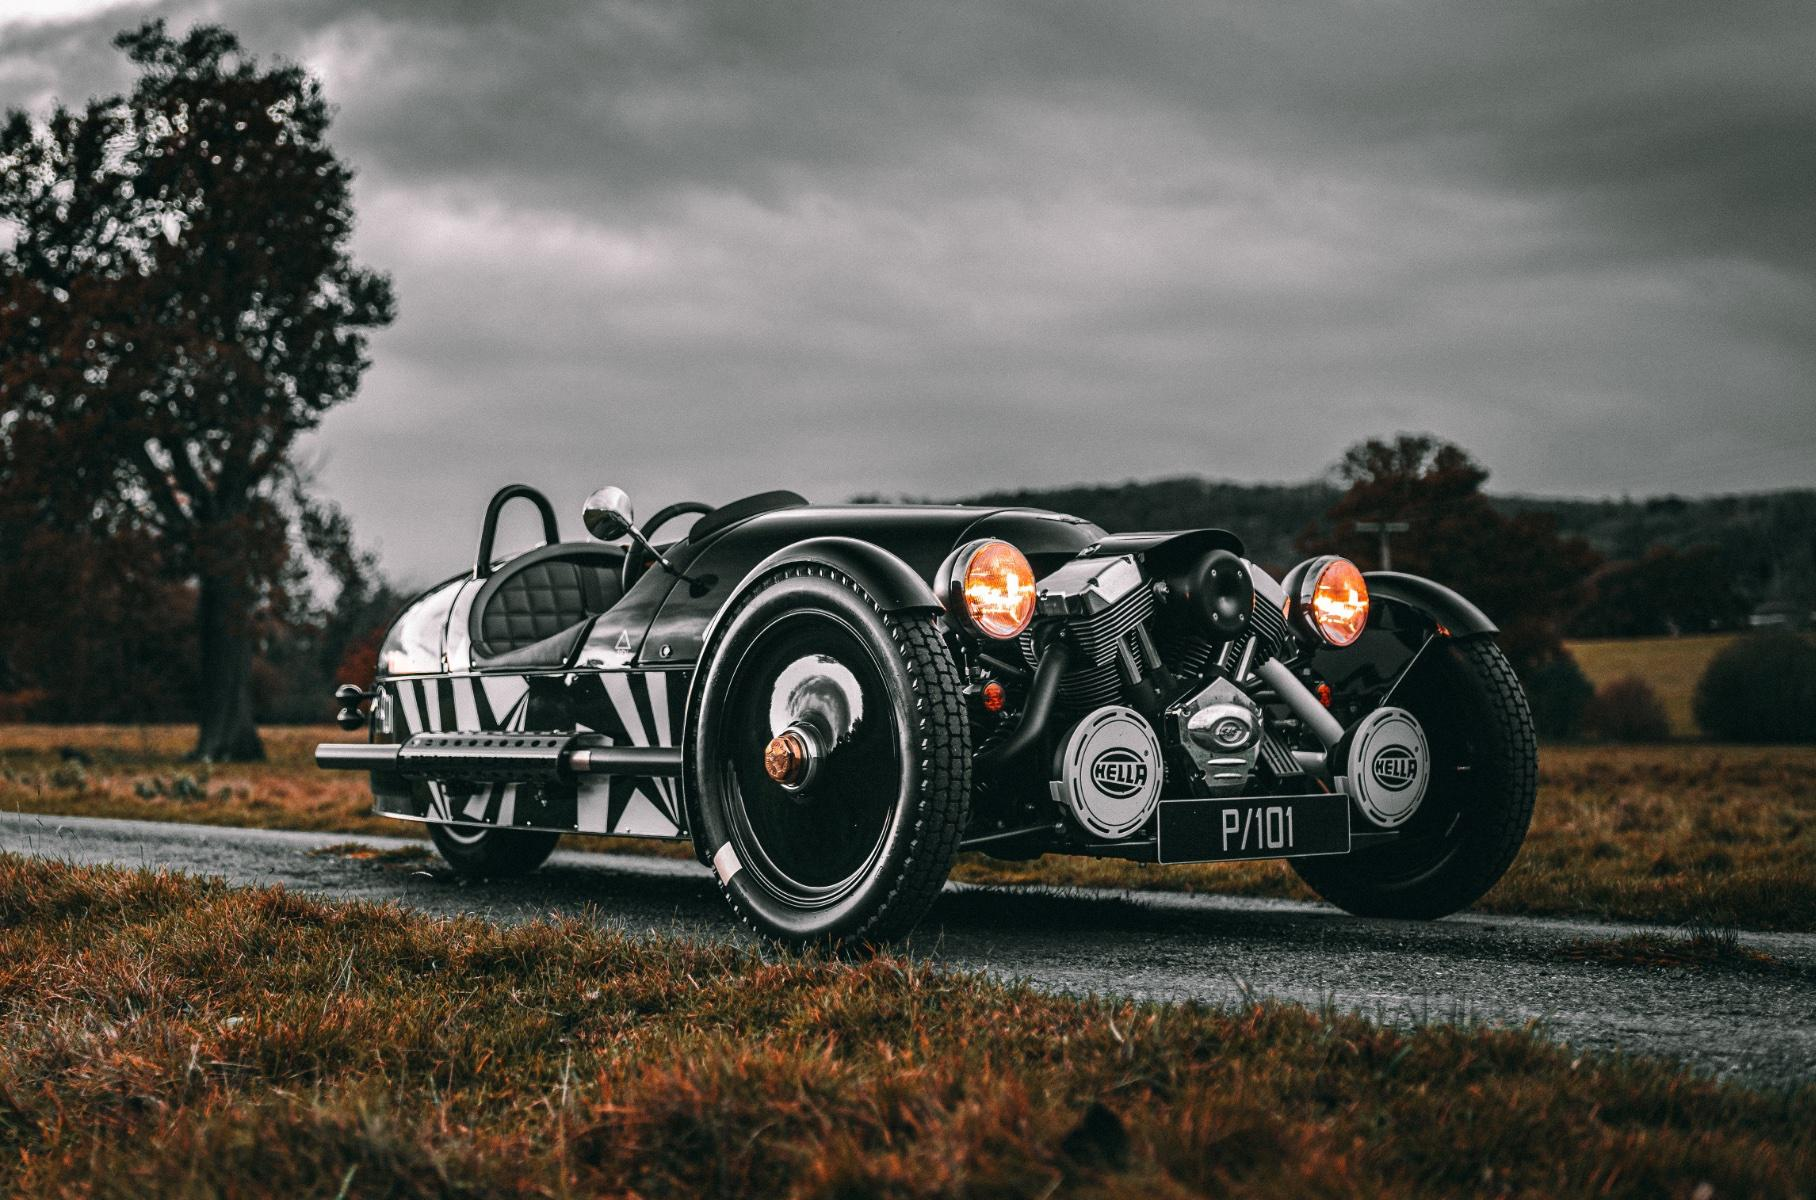 Morgan Motor Company has announced the production of the final batch of its 3 Wheeler model. The batch will be marked 'P101' and will be limited to 33 tricycles priced at £45,000 each. Shipments will be made to Great Britain, Europe and the United States.